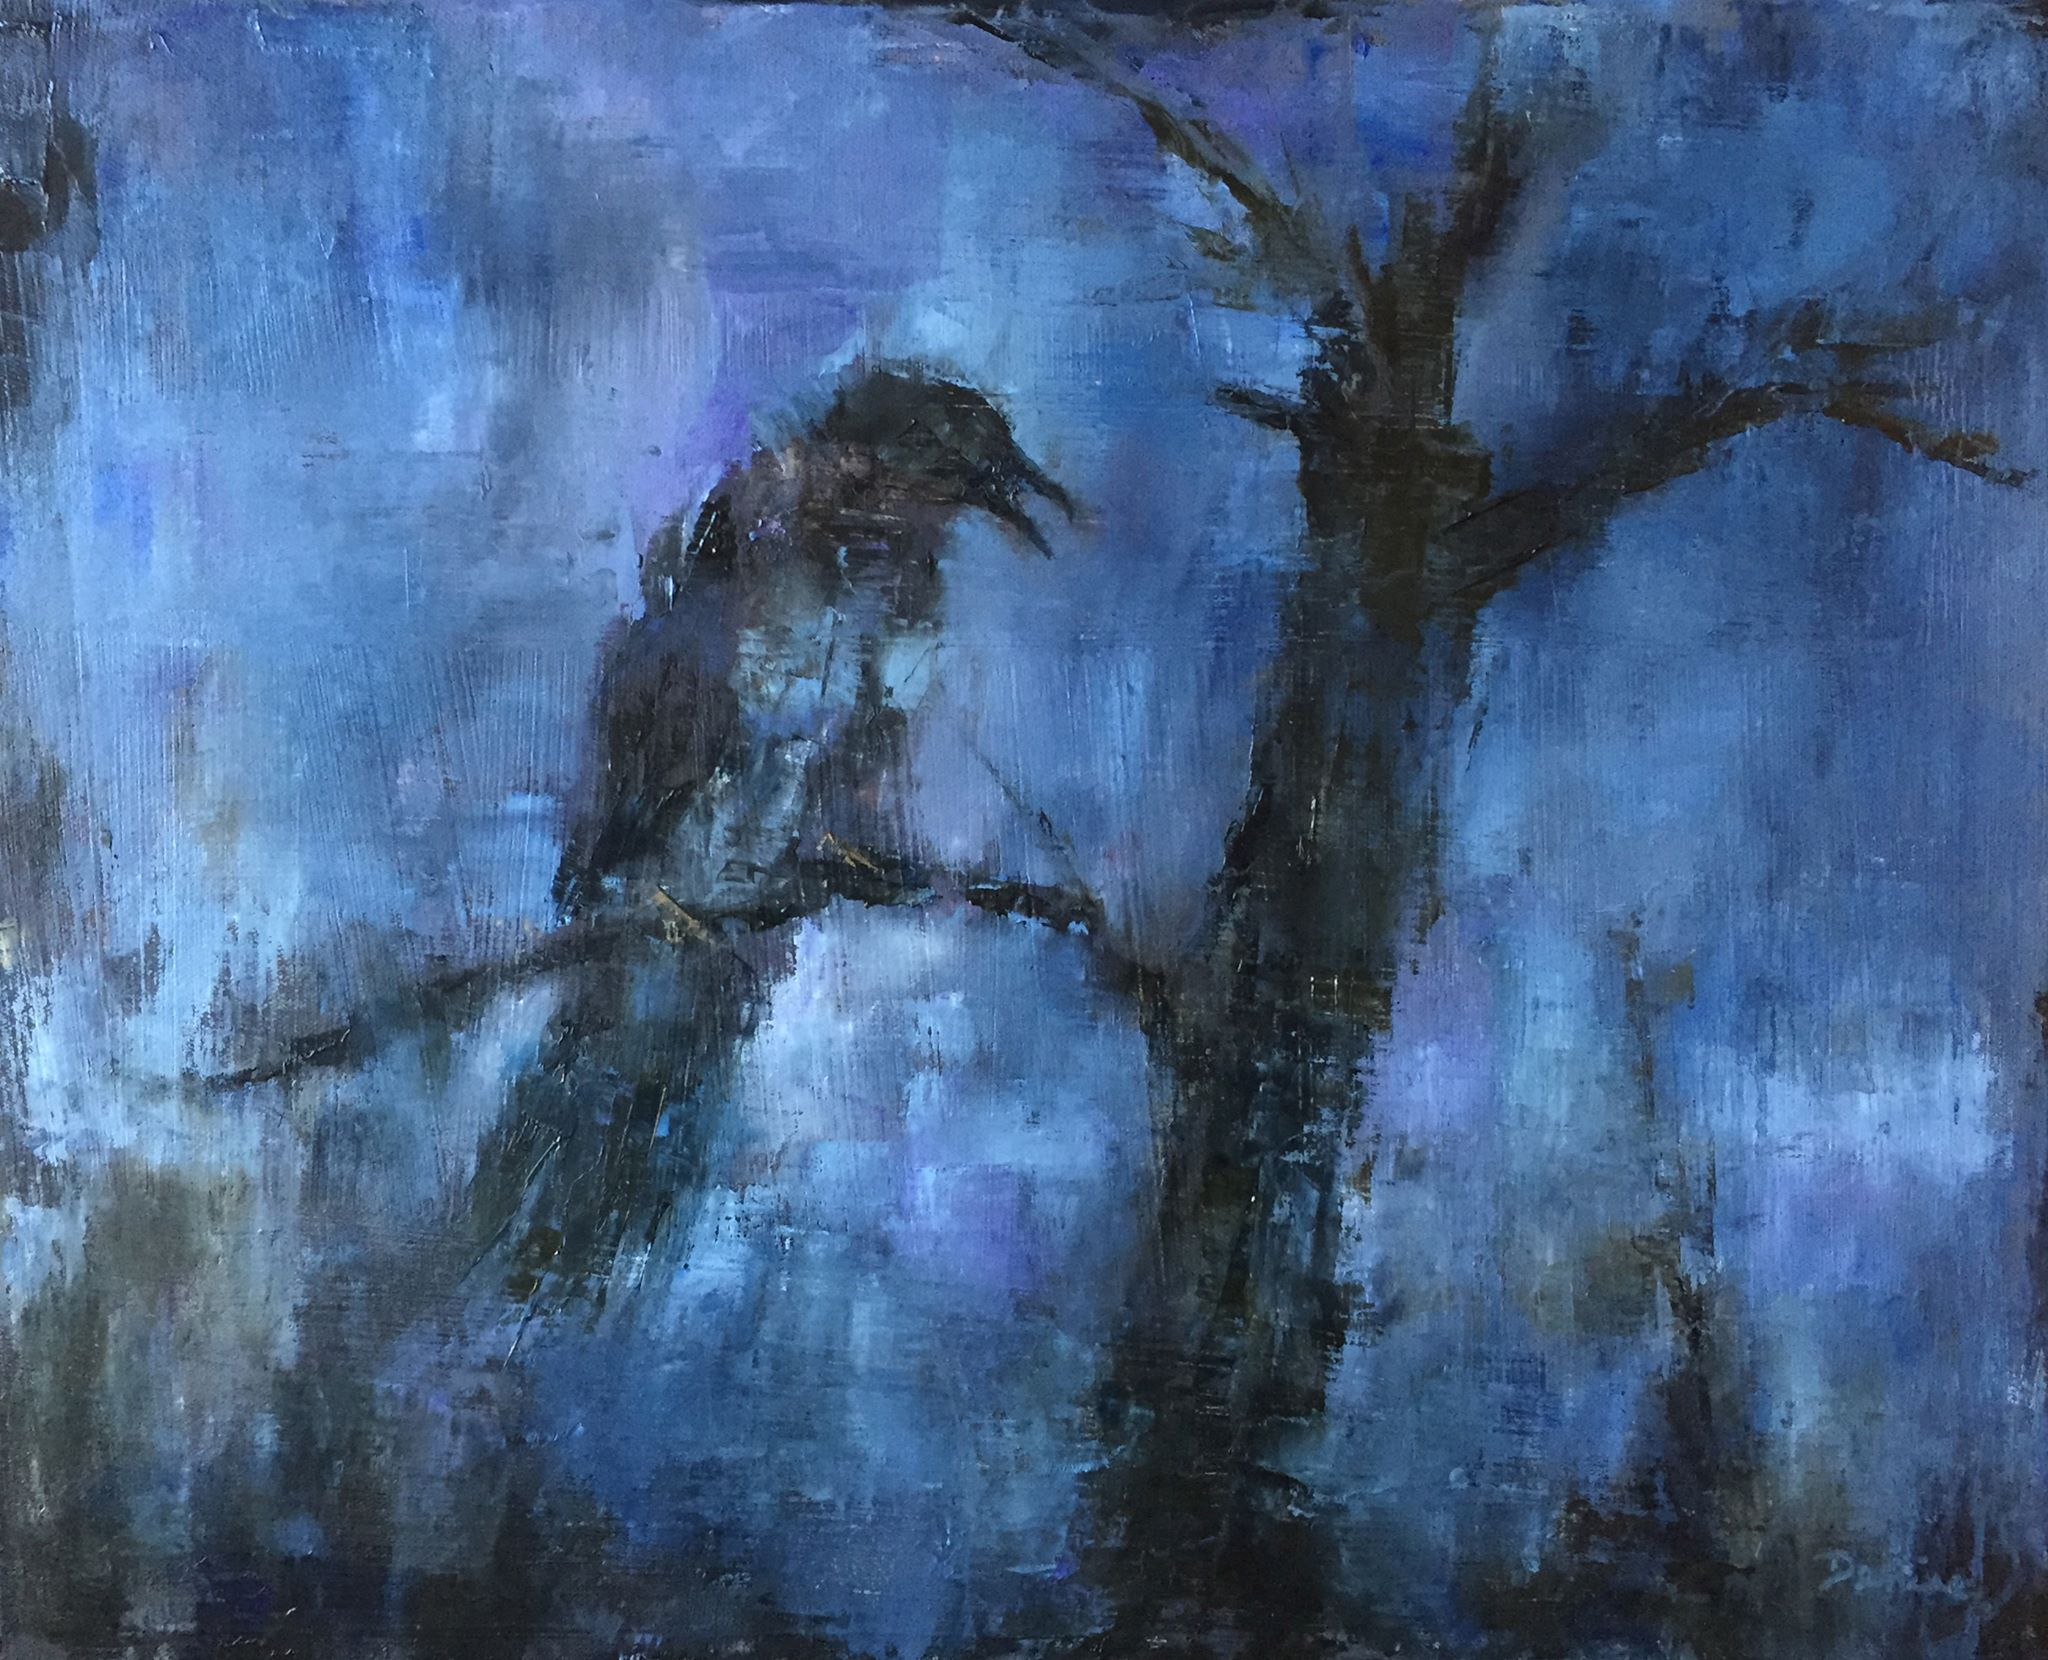 The Raven, Oil on Canvas, 16 x 20